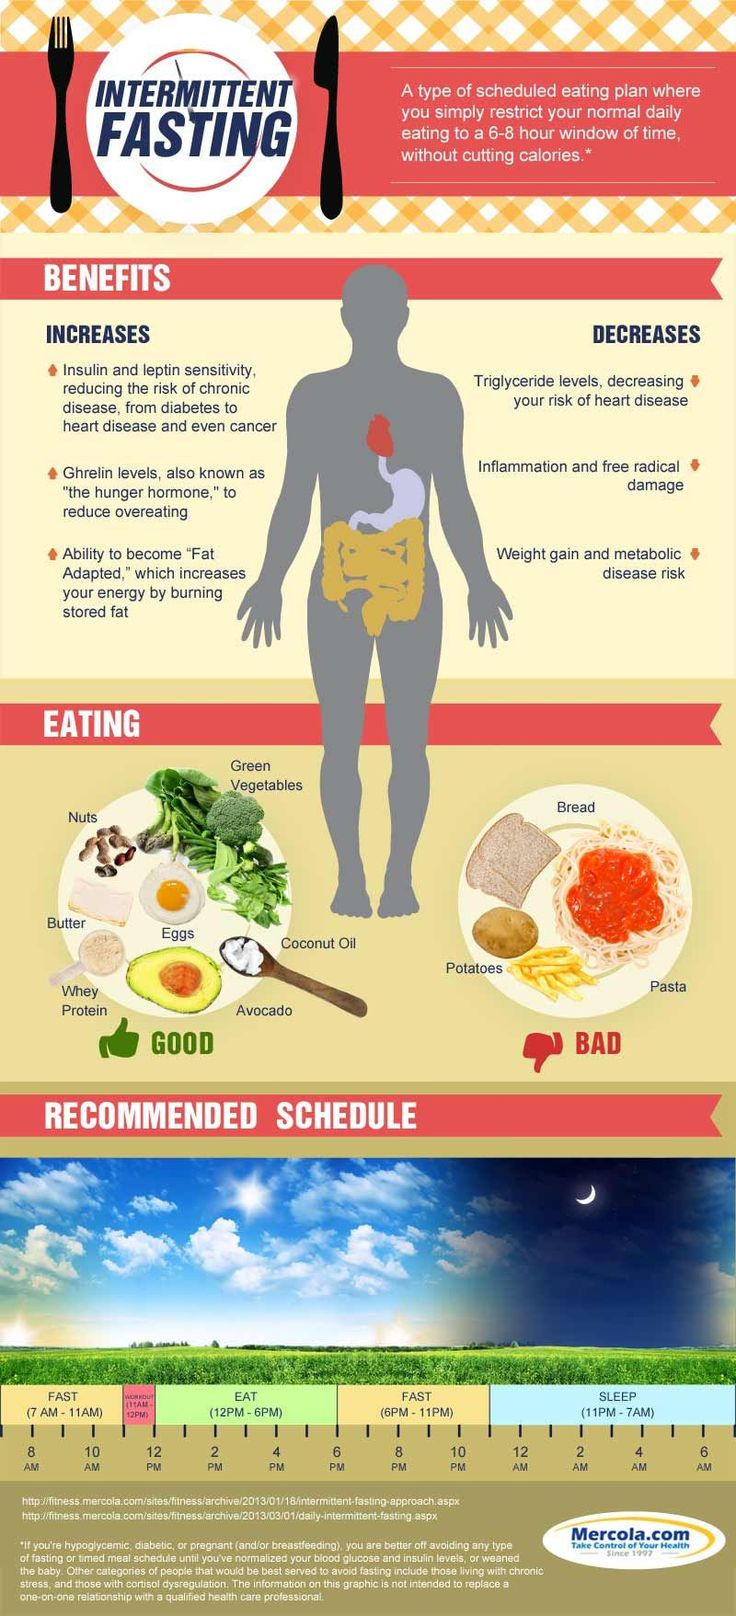 This infographic on intermittent fasting discusses the benefits of a scheduled eating plan and provides helpful fasting tips. http://www.mercola.com/infographics/intermittent-fasting.htm